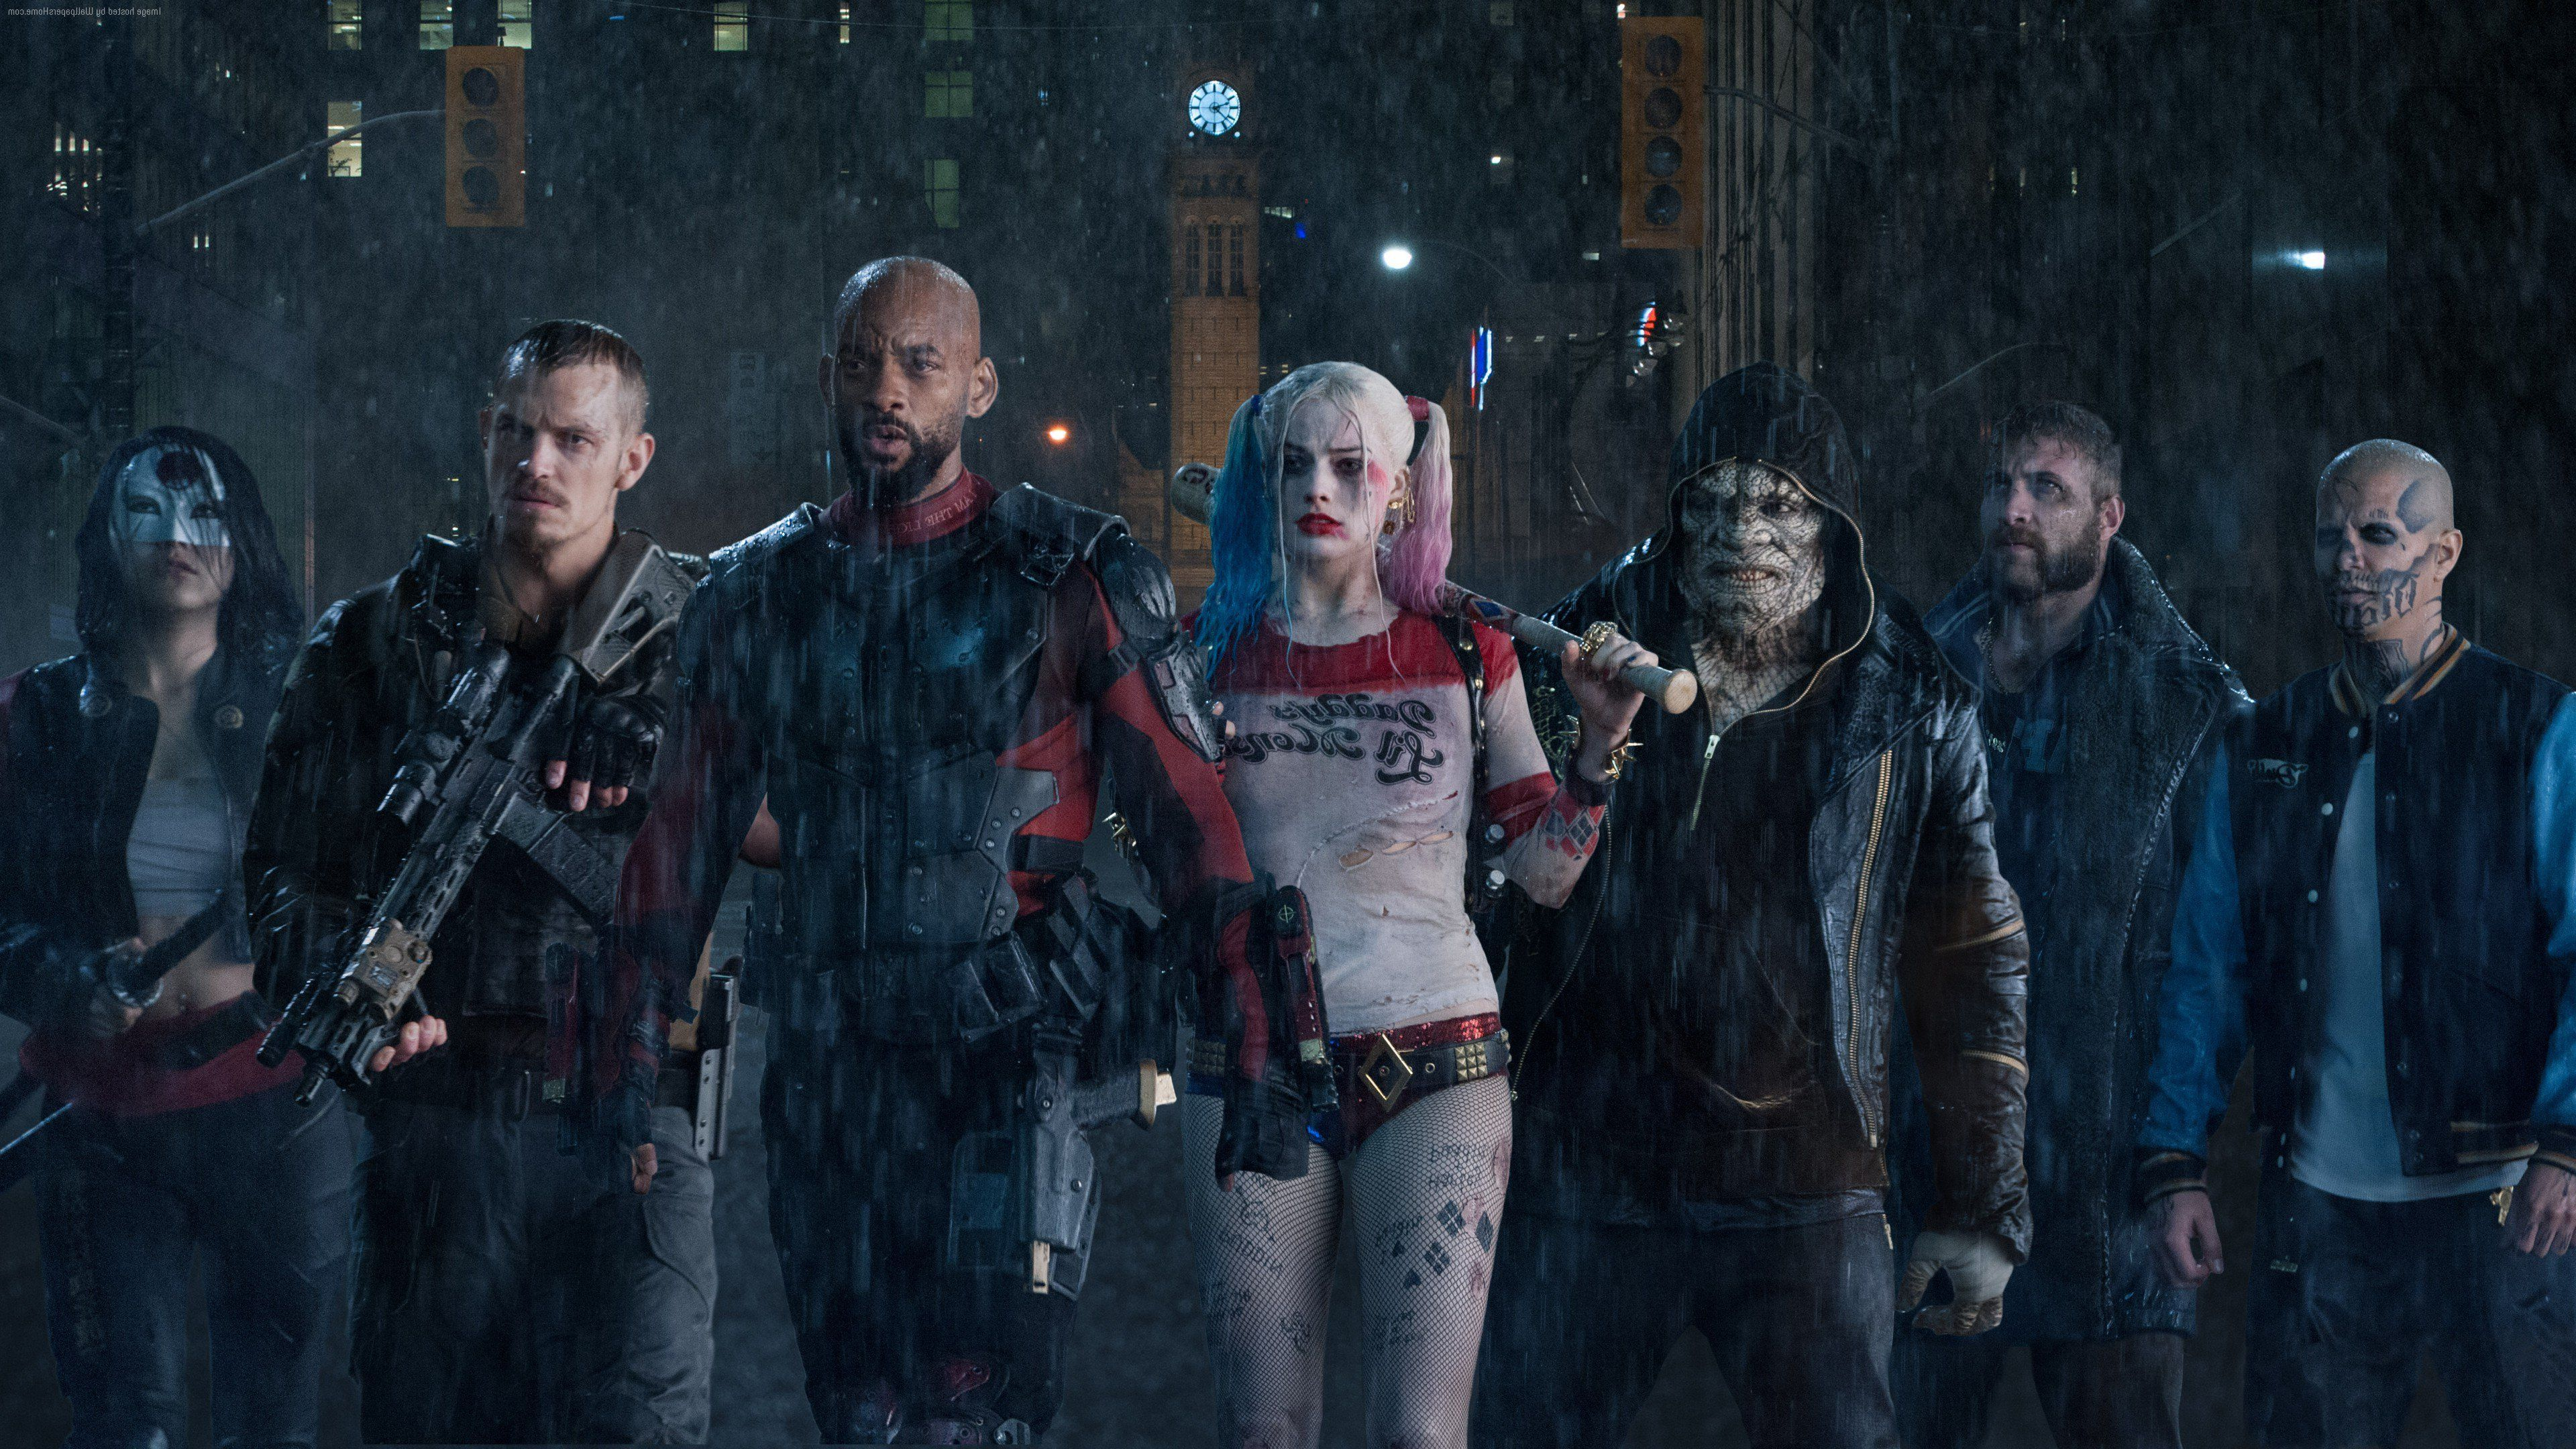 Wallpapers 4k Suicide Squad Team 2016 movies wallpapers, deadshot wallpapers, death stroke wallpapers, harley quinn wallpapers, movies wallpapers, suicide squad wallpapers